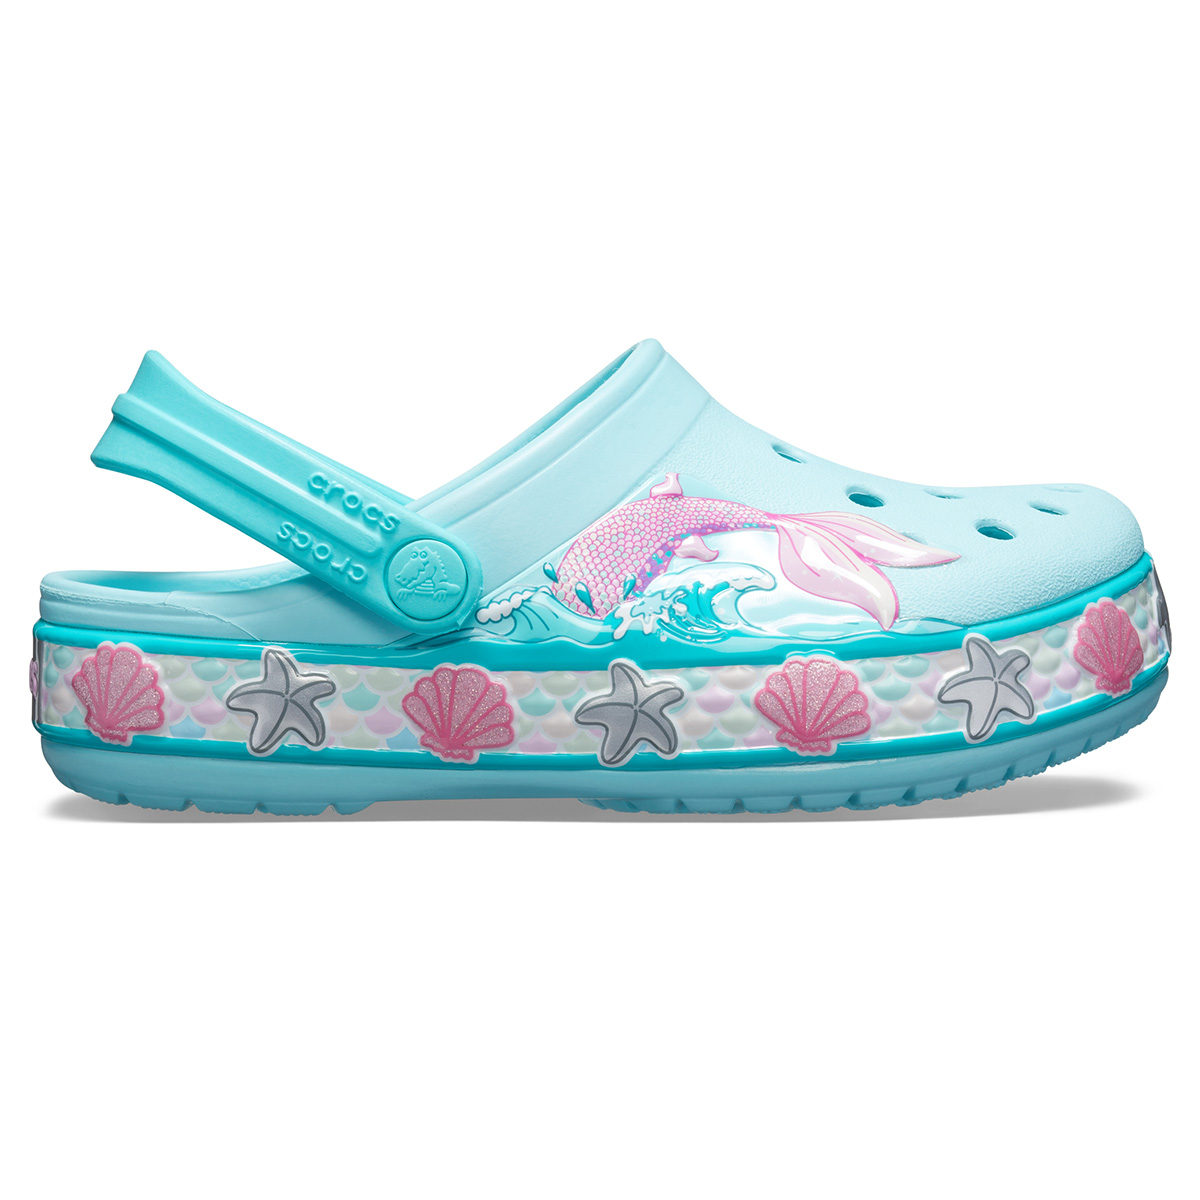 CrocsFL Mermaid Band Clog K - Buz Mavisi